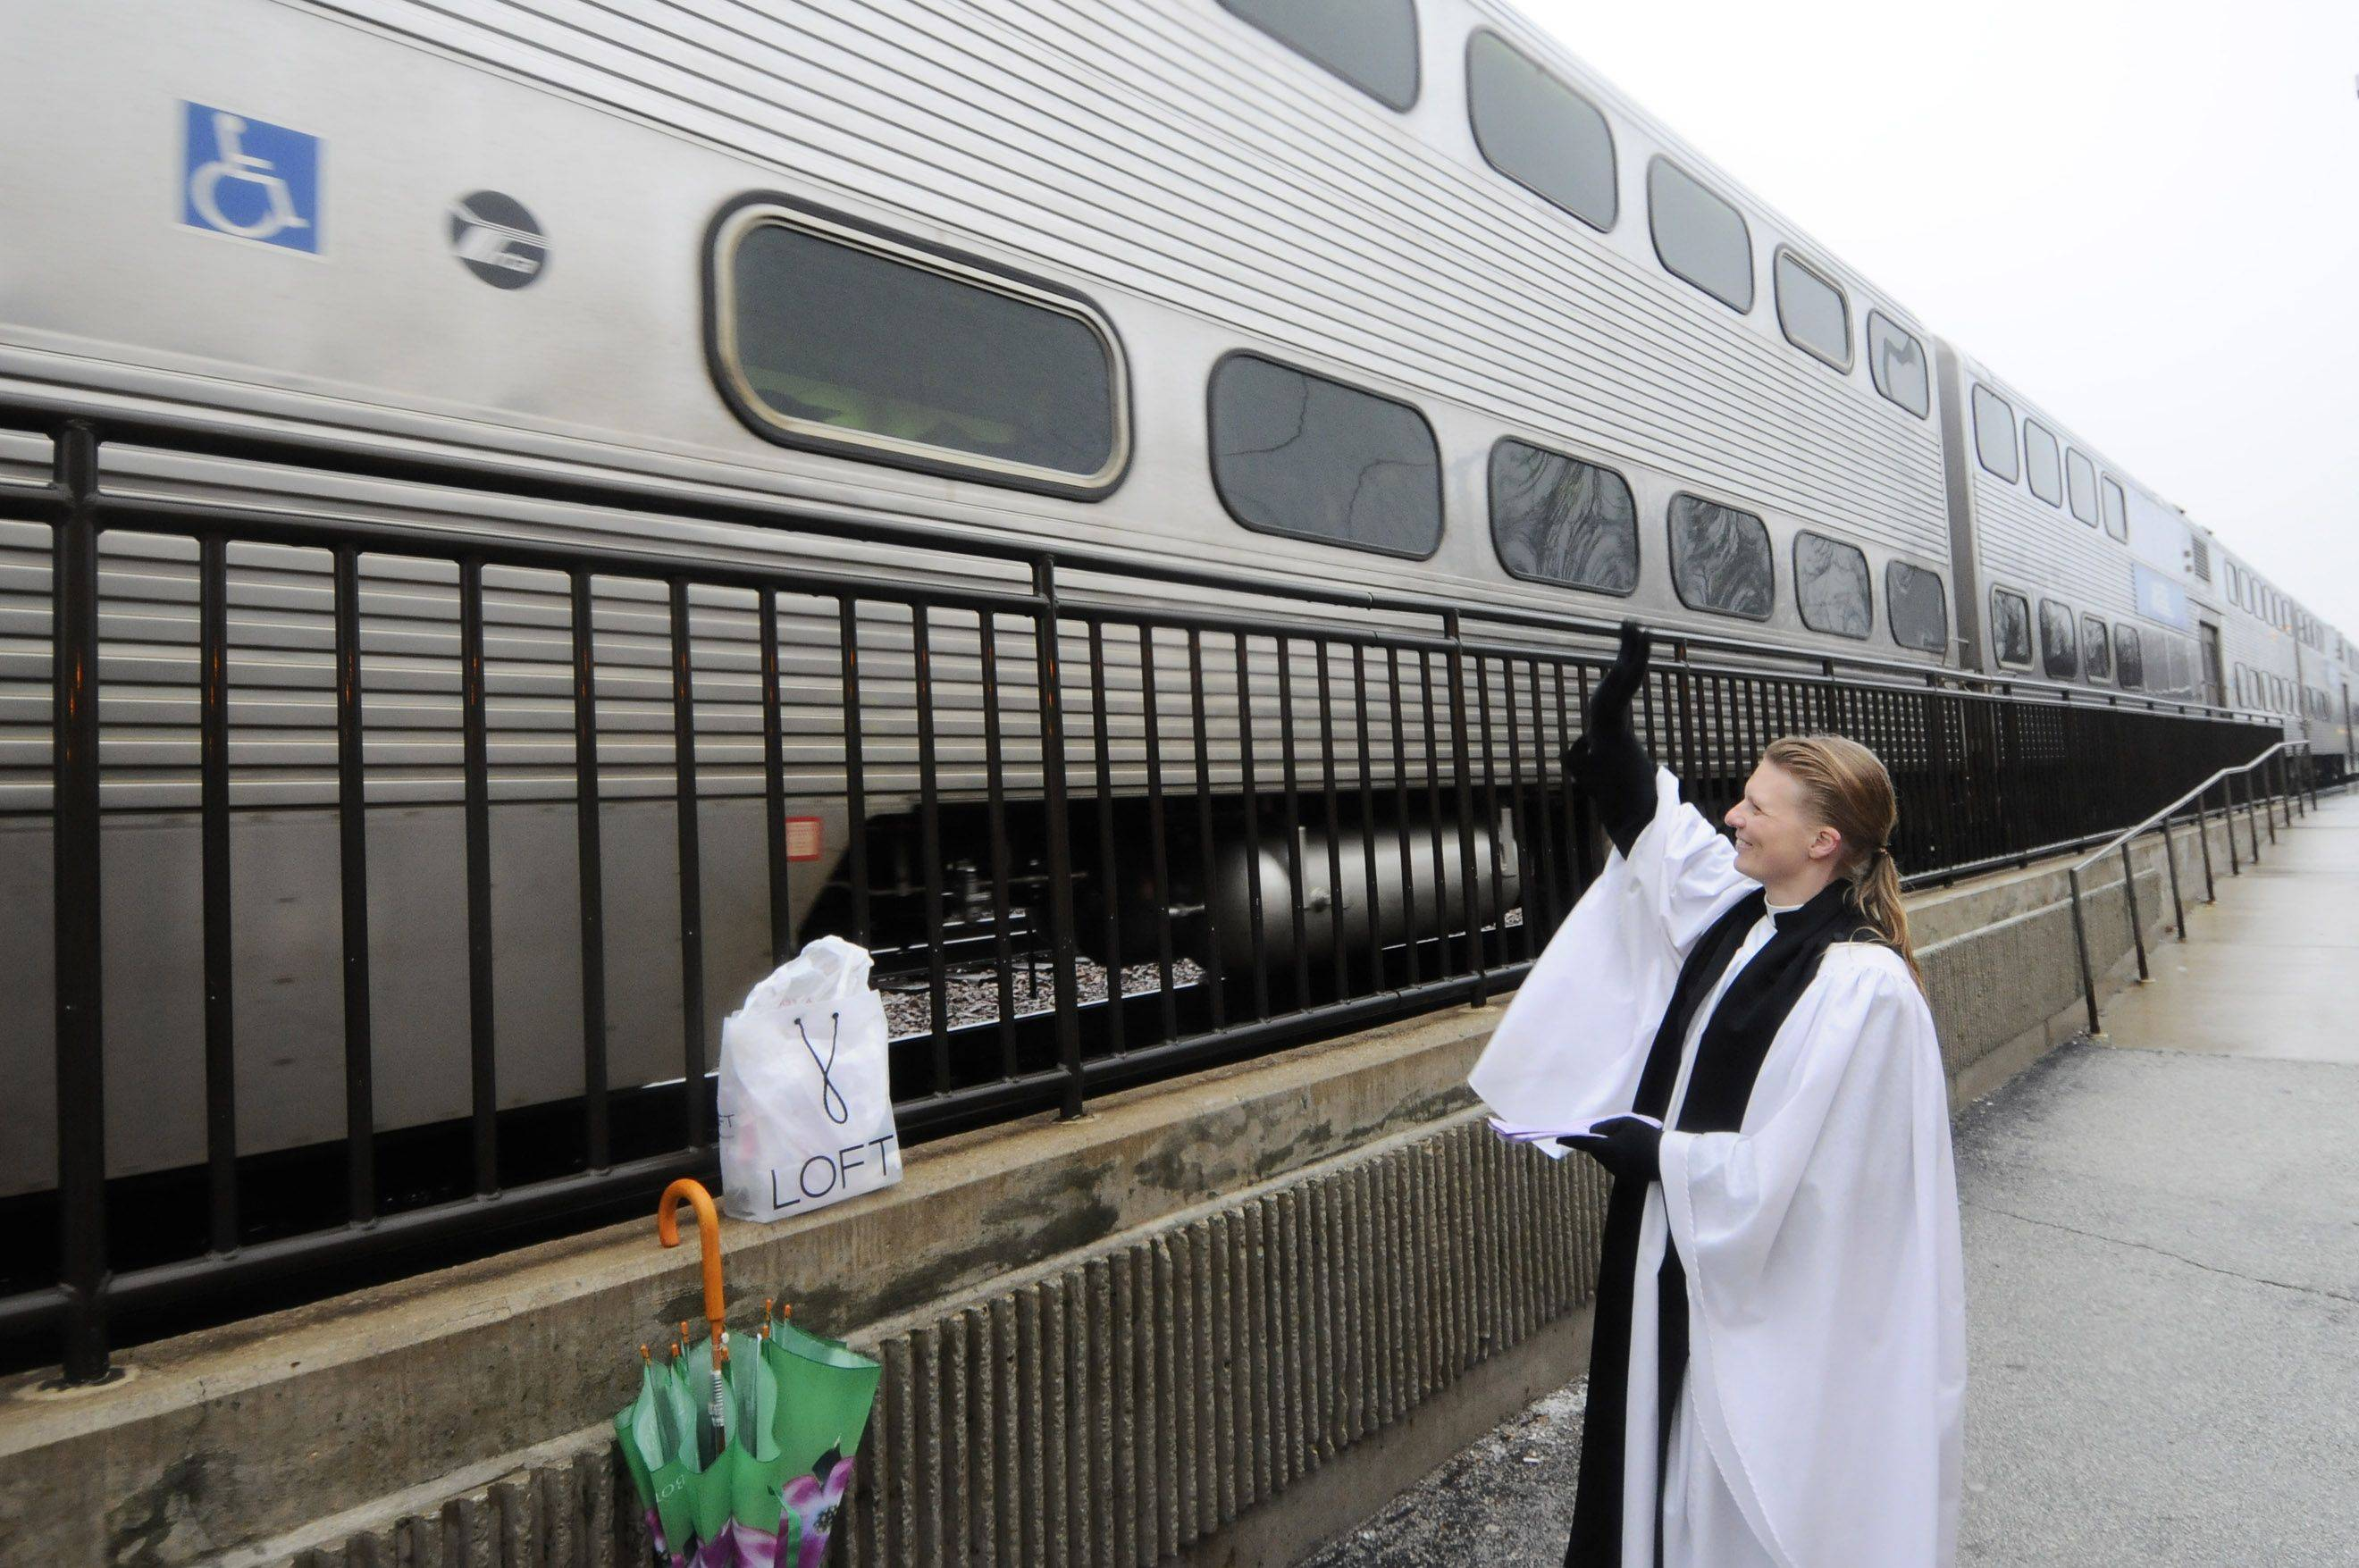 Rev. Emily Mellott waves to commuters as a train pulls out of the Lombard station Wednesday. She was on hand to distribute ashes to commuters on Ash Wednesday.